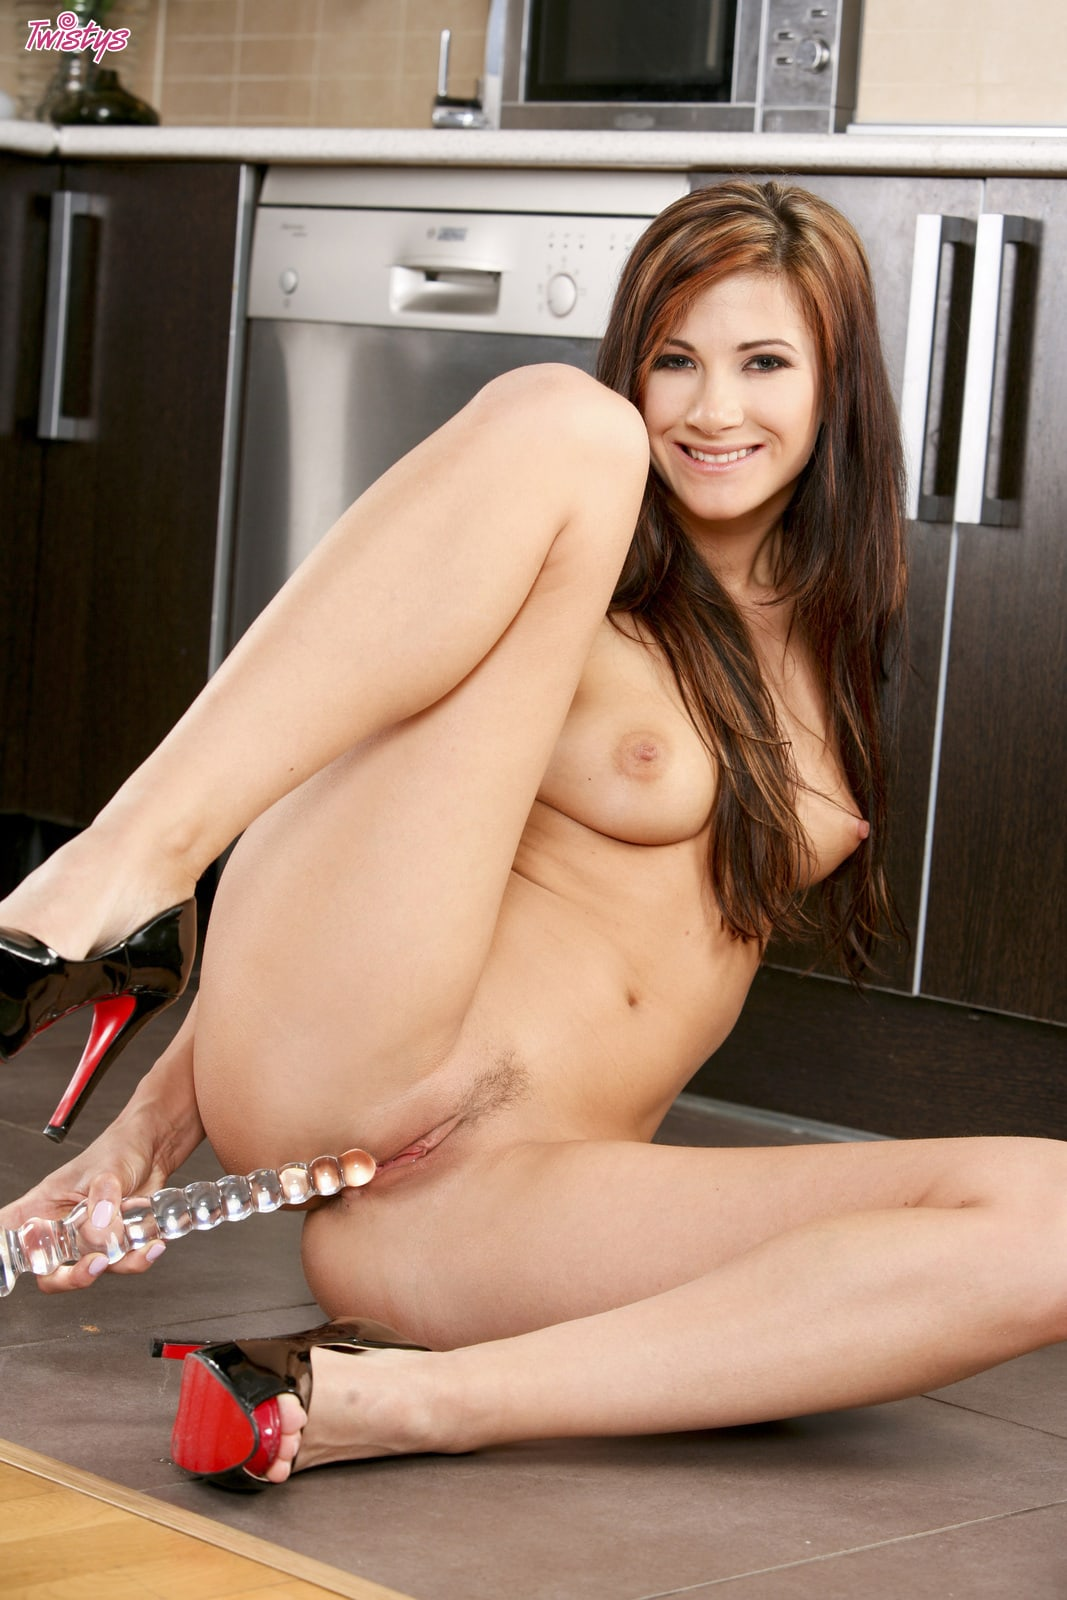 Lauren Crist stripping in the kitchen and playing with a dildo